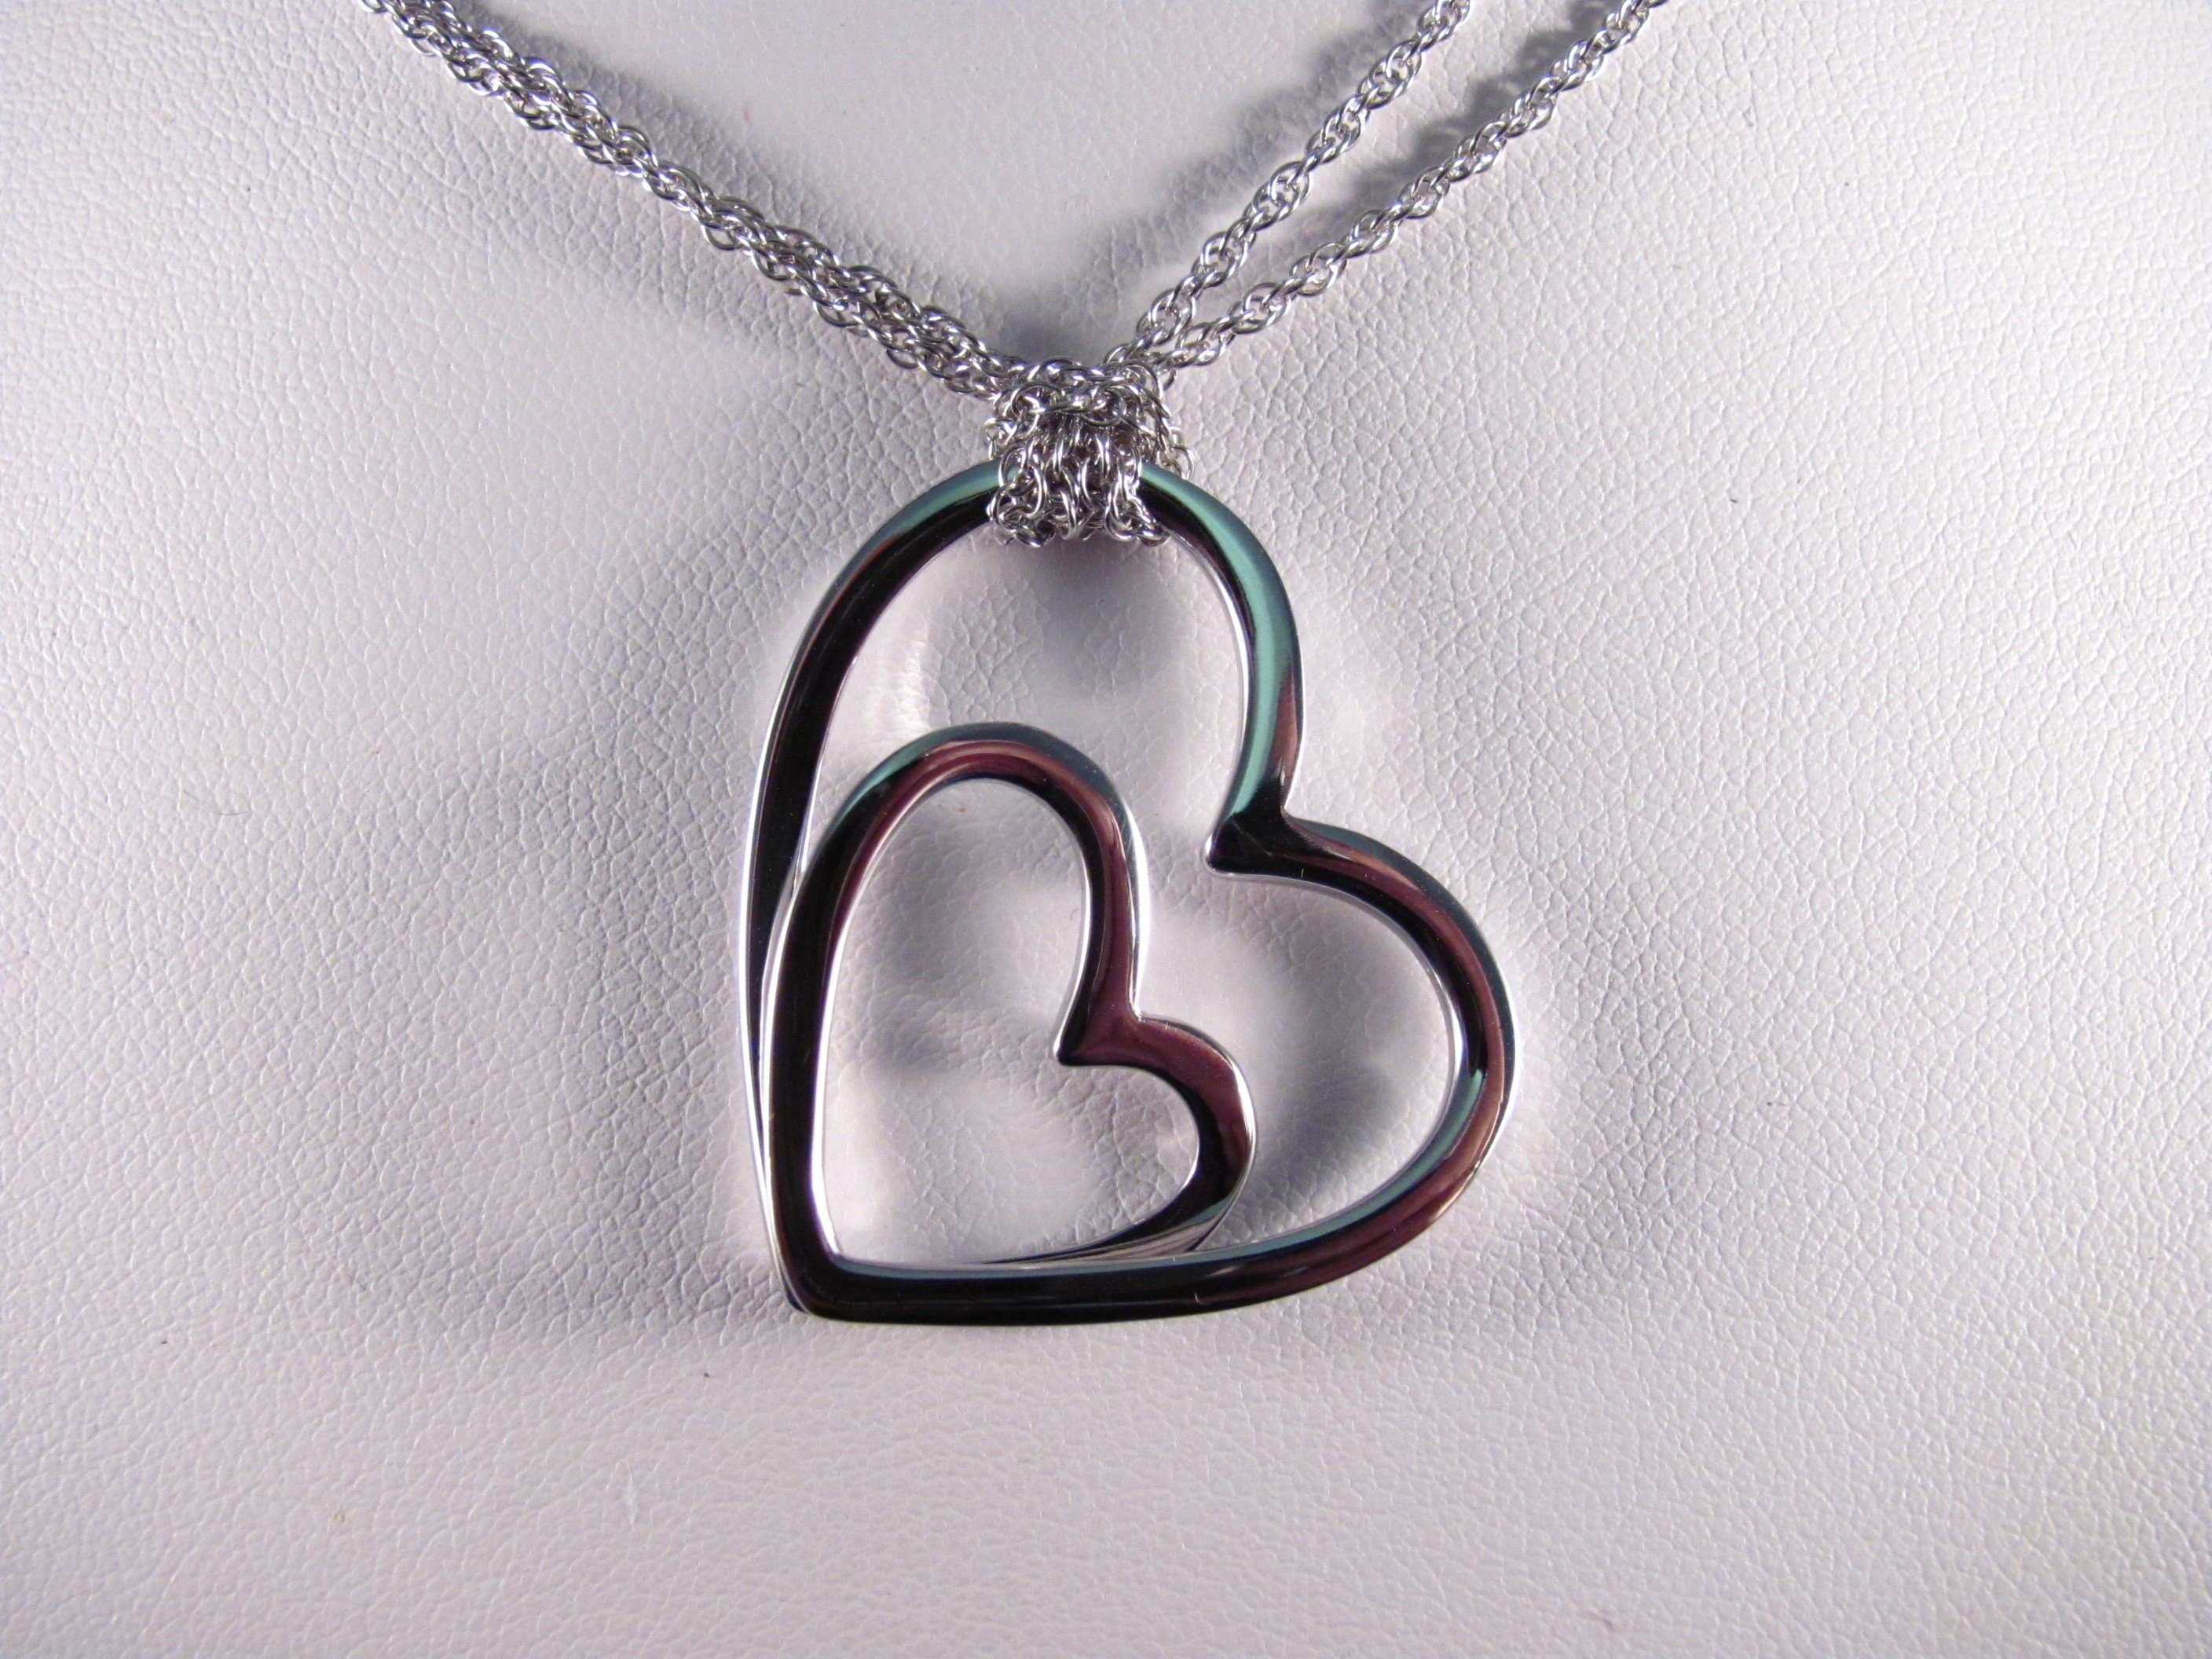 PdS0313 - Heart Pendant in Sterling Silver (SOLD)